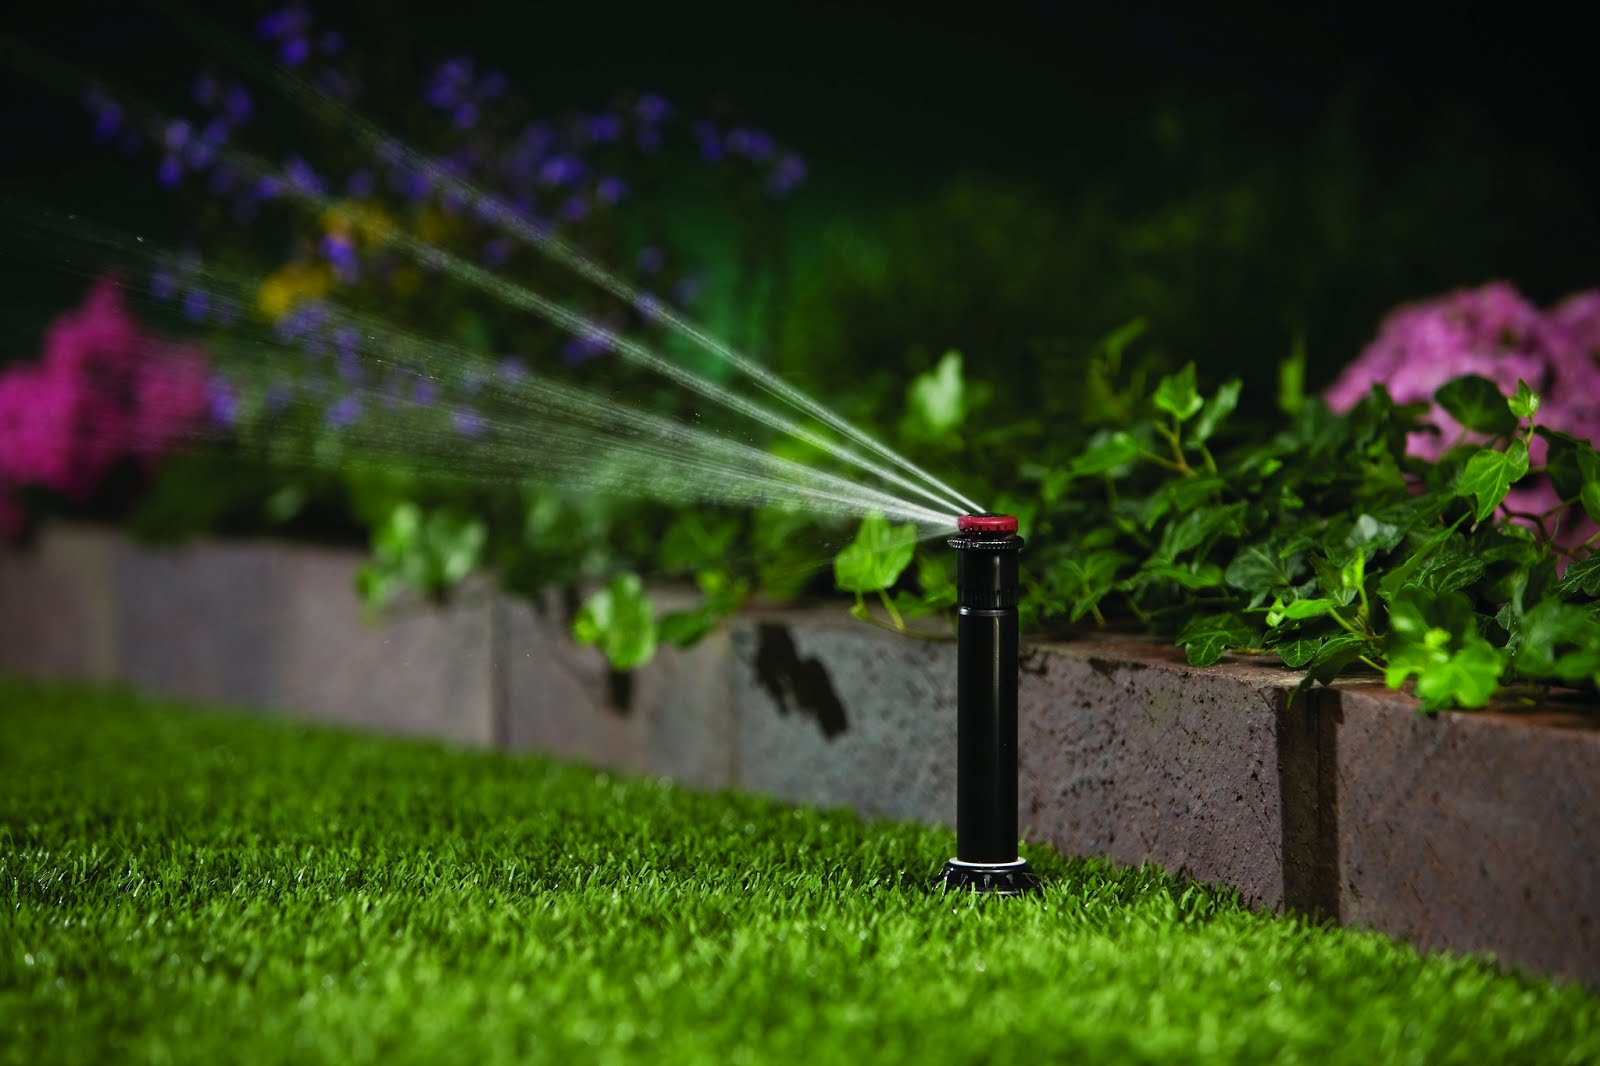 Sprinkler Services-Allen TX Professional Landscapers & Outdoor Living Designs-We offer Landscape Design, Outdoor Patios & Pergolas, Outdoor Living Spaces, Stonescapes, Residential & Commercial Landscaping, Irrigation Installation & Repairs, Drainage Systems, Landscape Lighting, Outdoor Living Spaces, Tree Service, Lawn Service, and more.